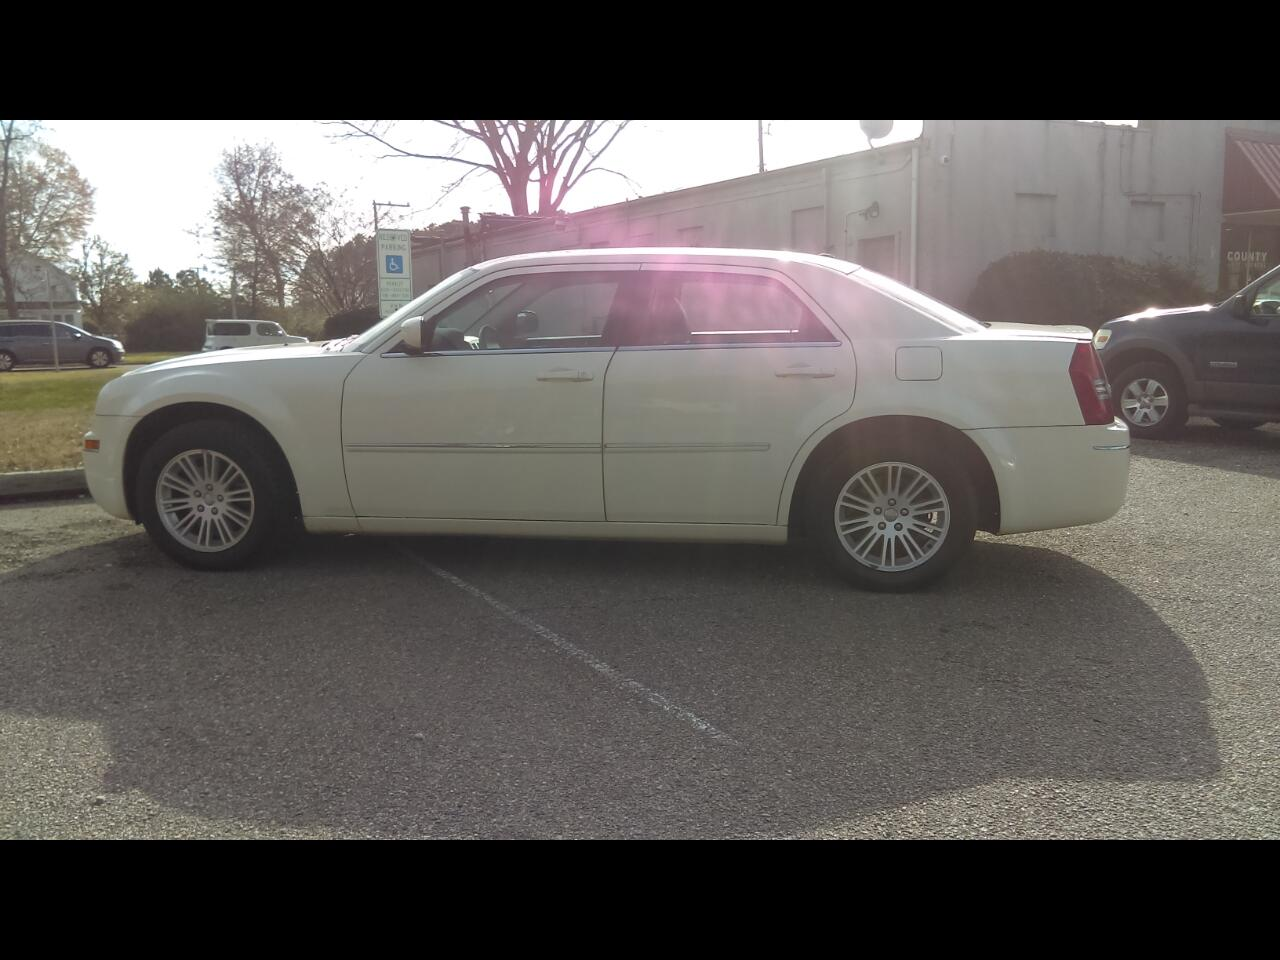 2009 Chrysler 300 4dr Sdn Touring RWD